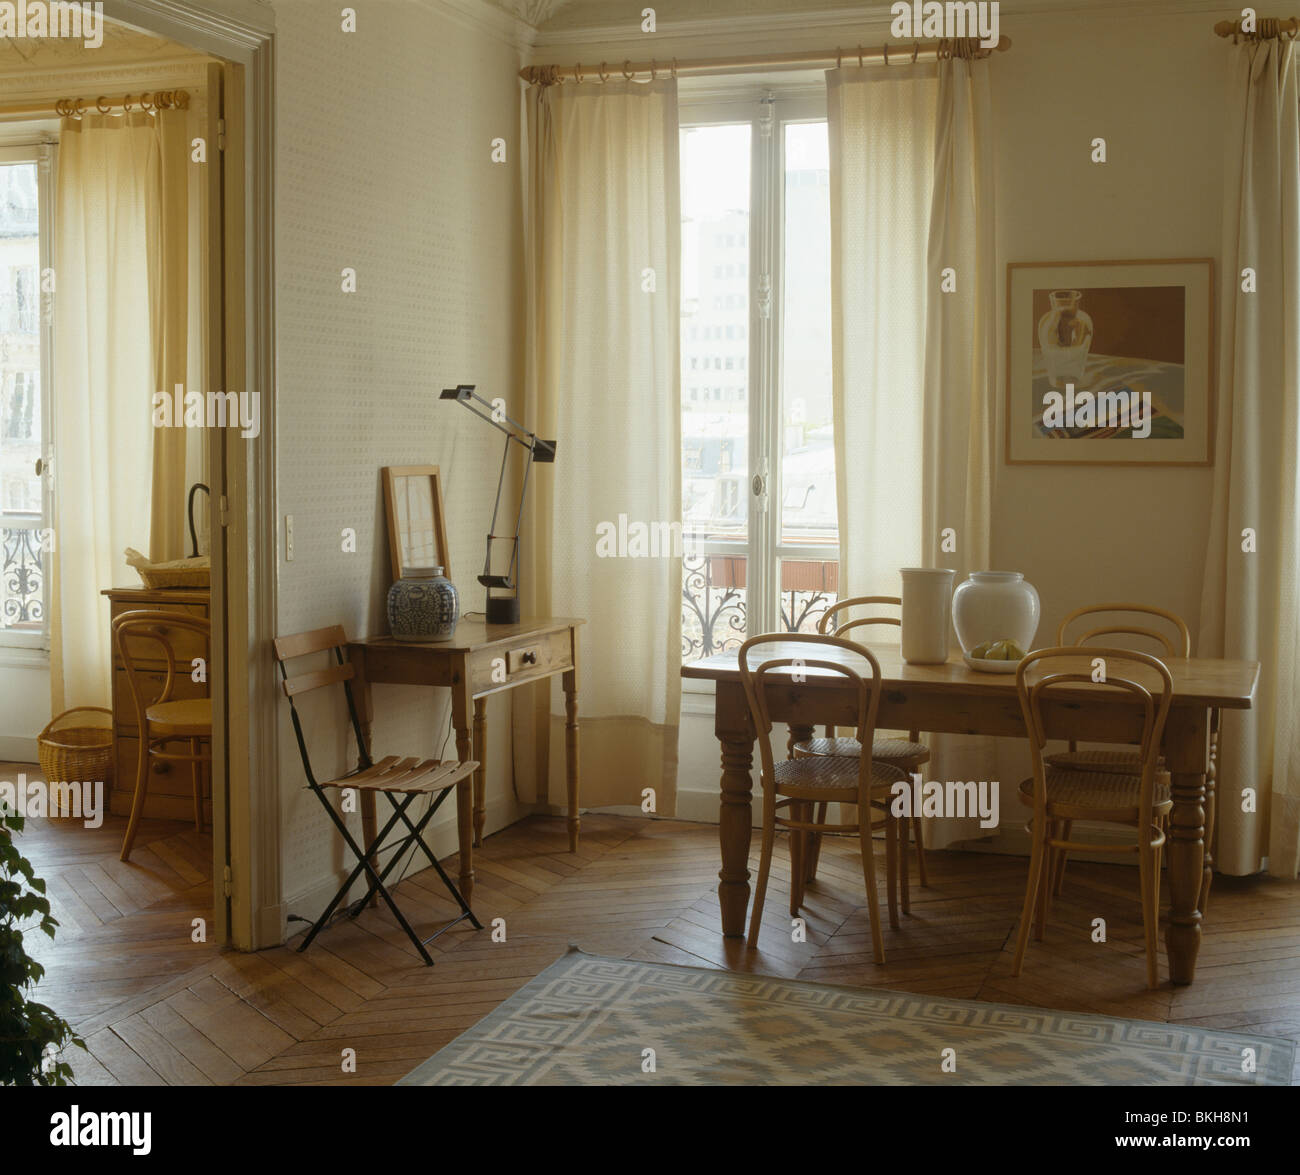 Antique Bentwood chairs and old pine table in cream apartment dining ...